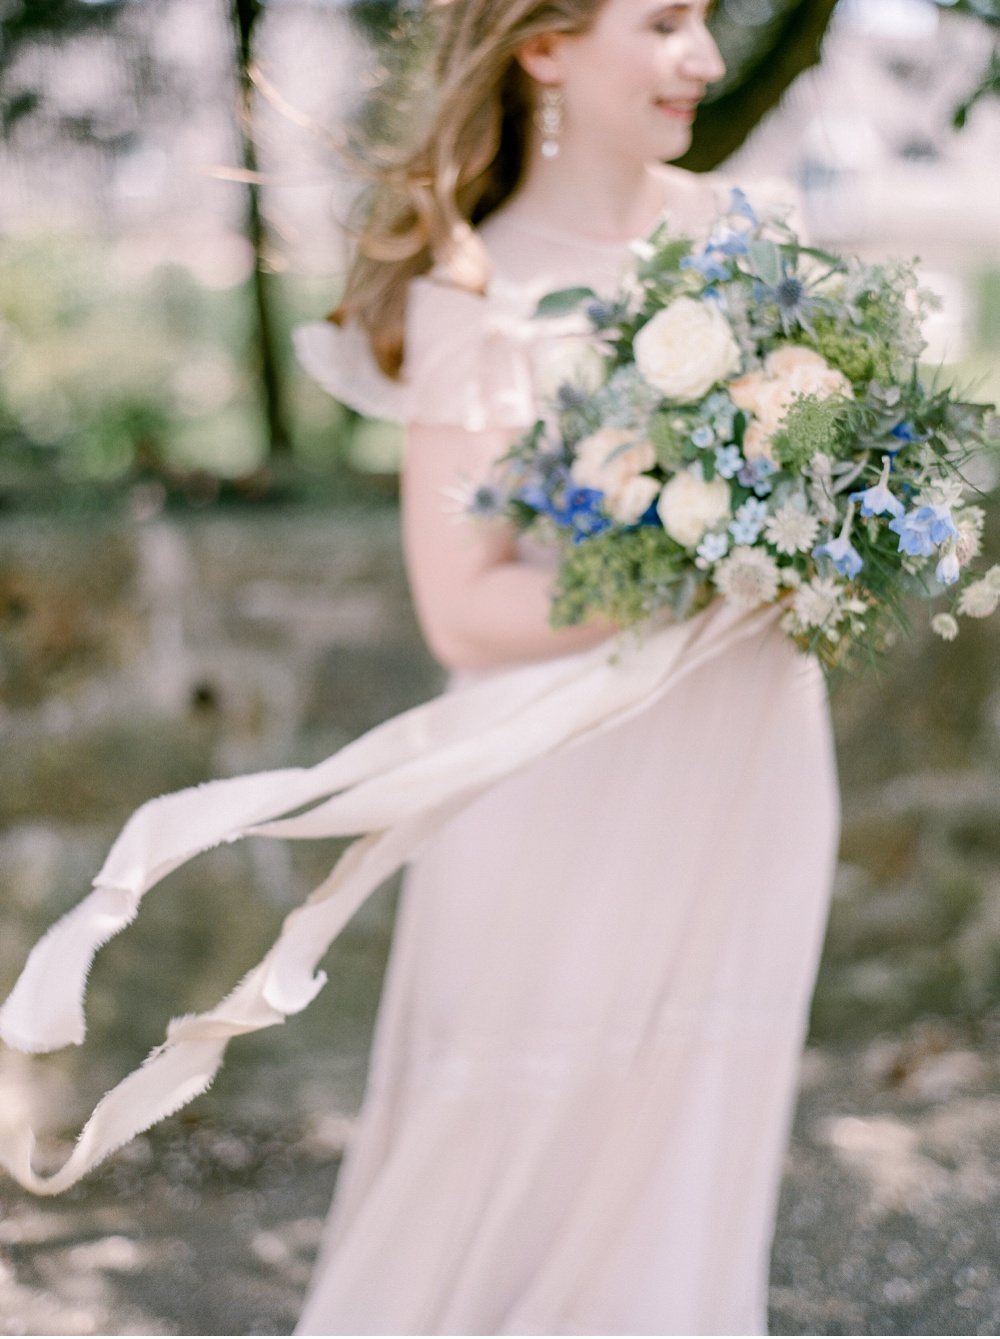 Wedding_Photographer_Tuscany©MadalinaSheldon_0006.jpg